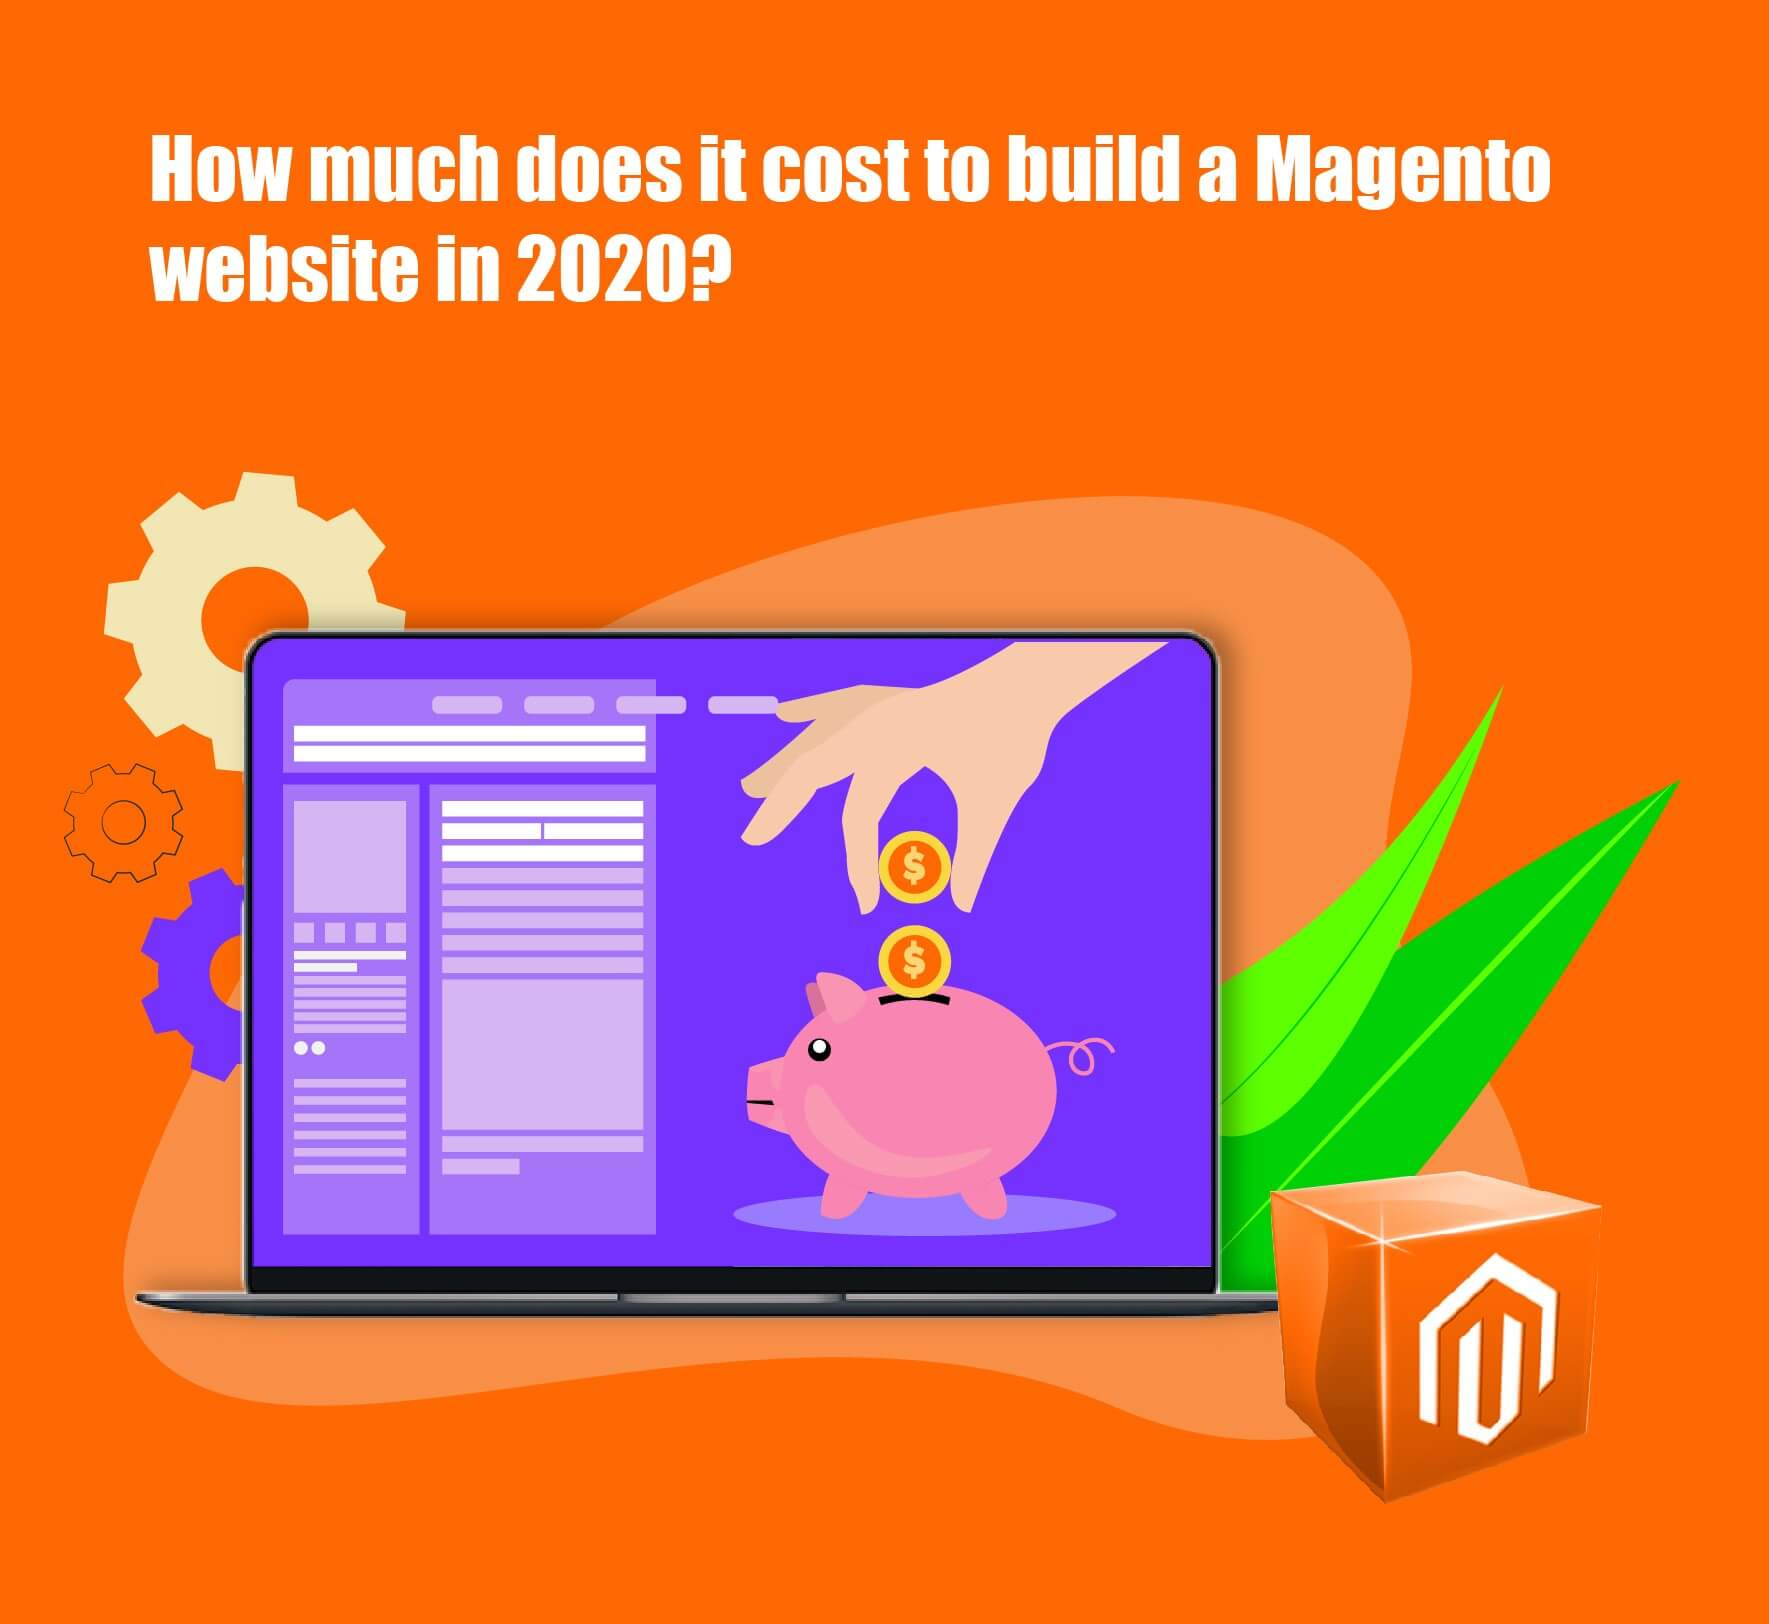 How much does it cost to build a Magento website in 2020?